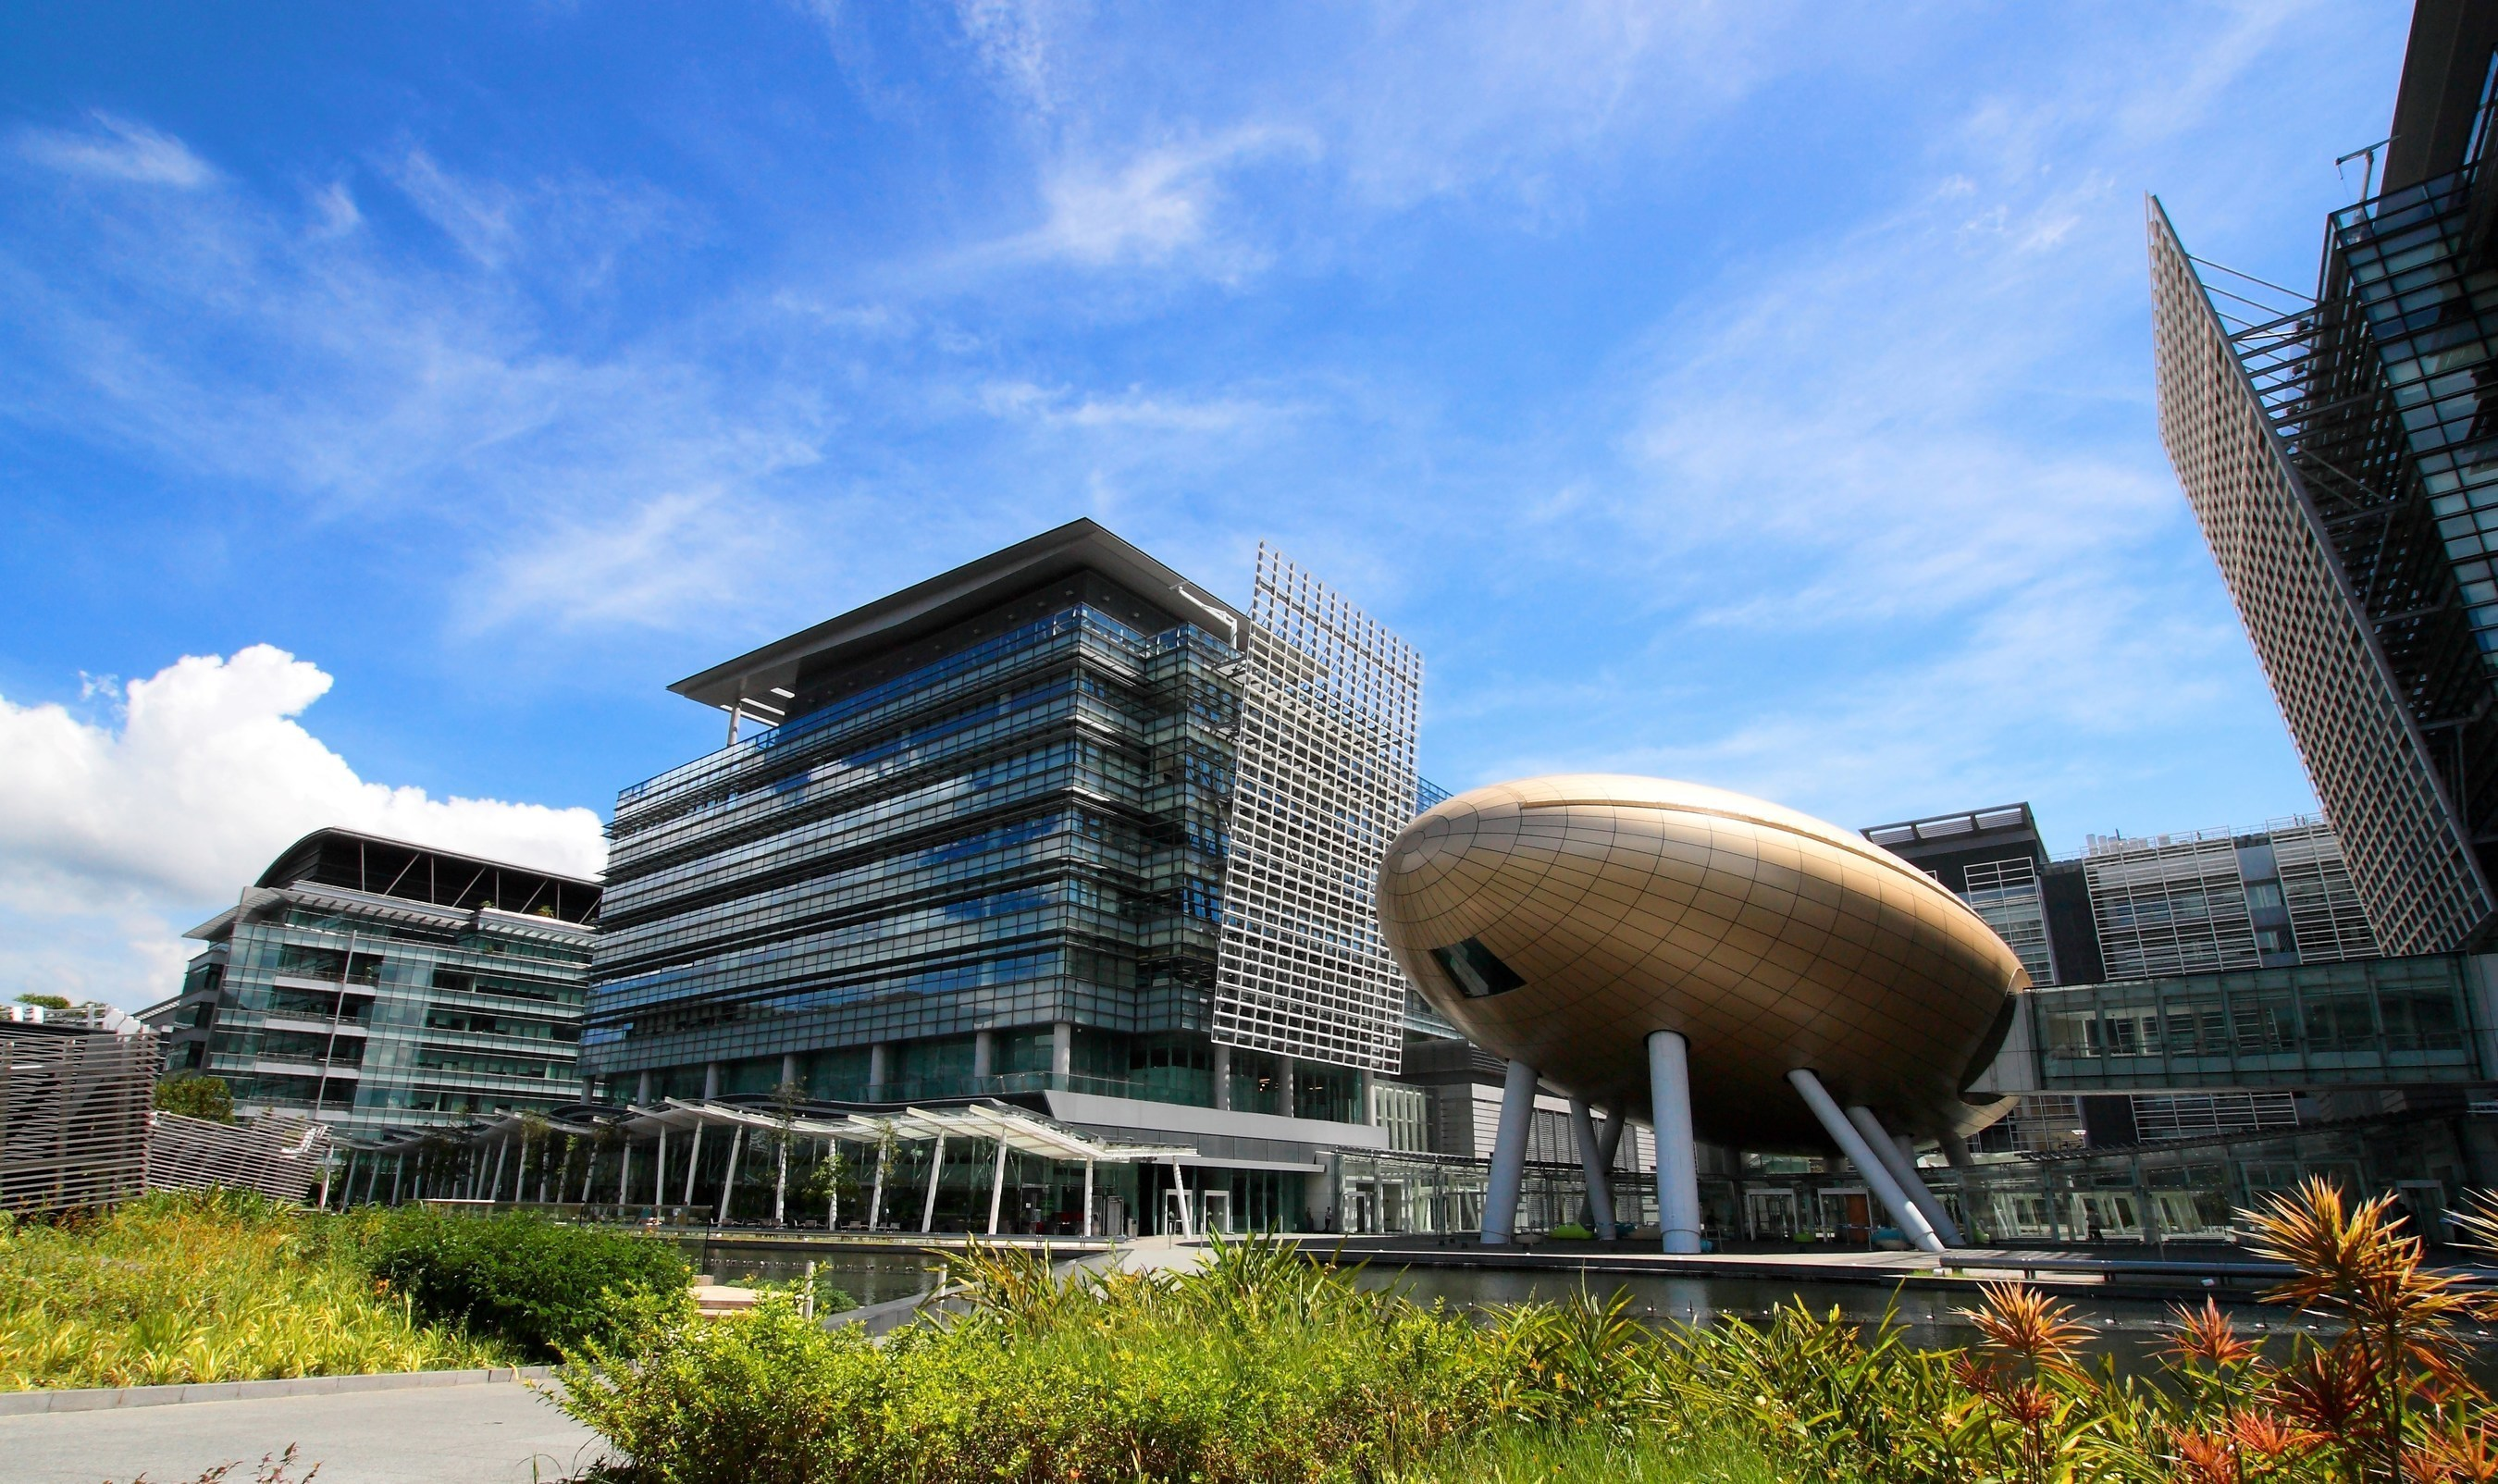 As a leading innovation and technology hub, Hong Kong Science Park is run under HKSTP's core 3Cs approach ...